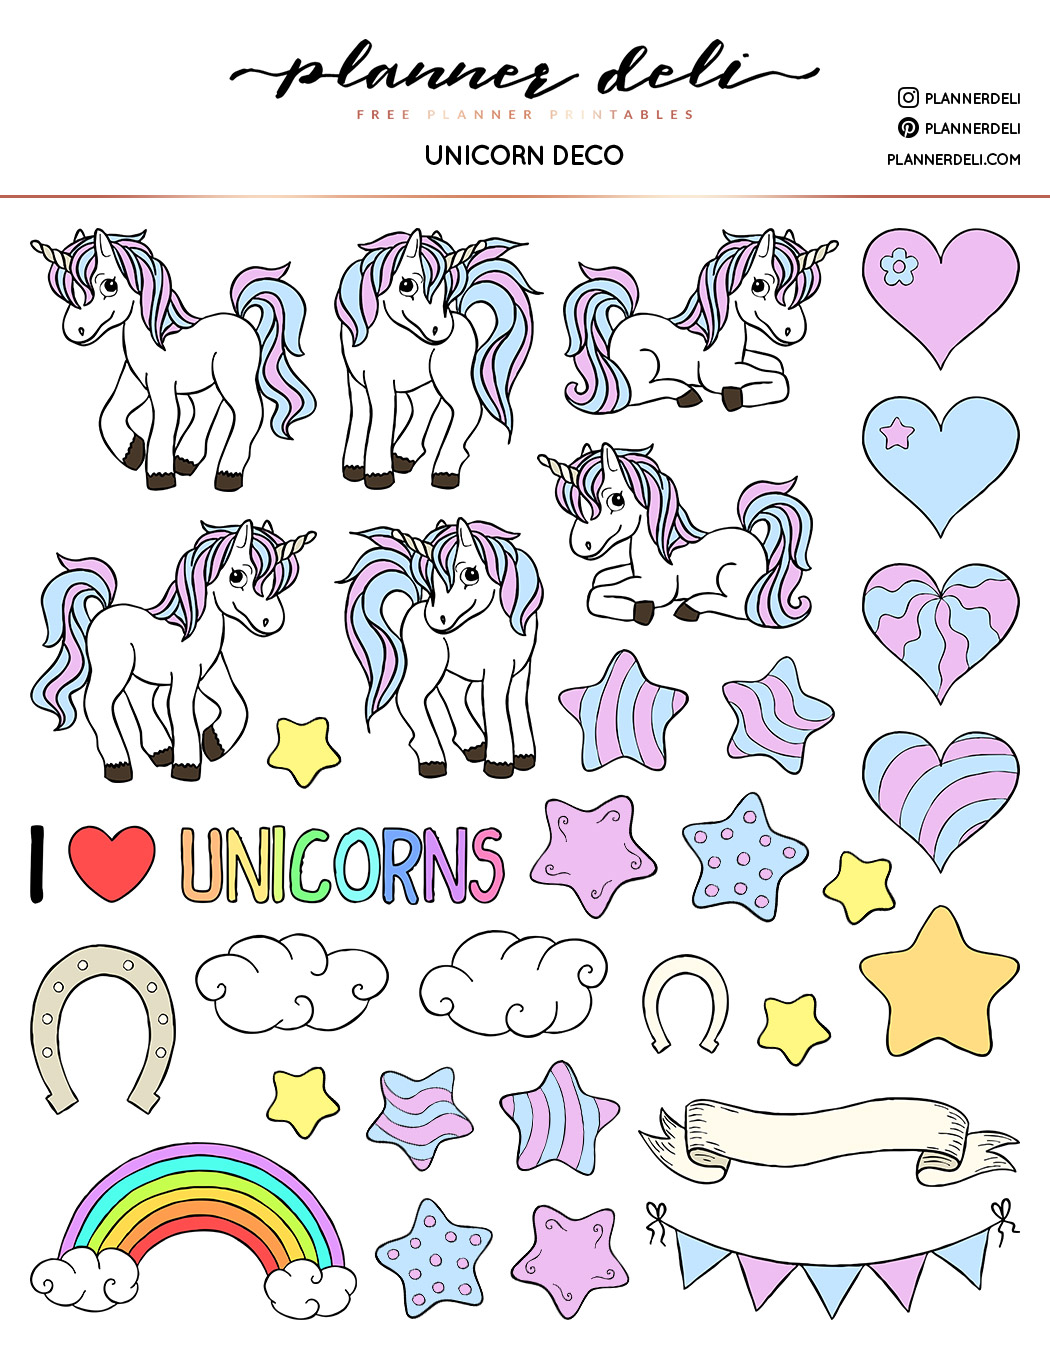 picture about Printable Sticker Sheets called Totally free Unicorn Deco Printable Stickers - Planner Deli